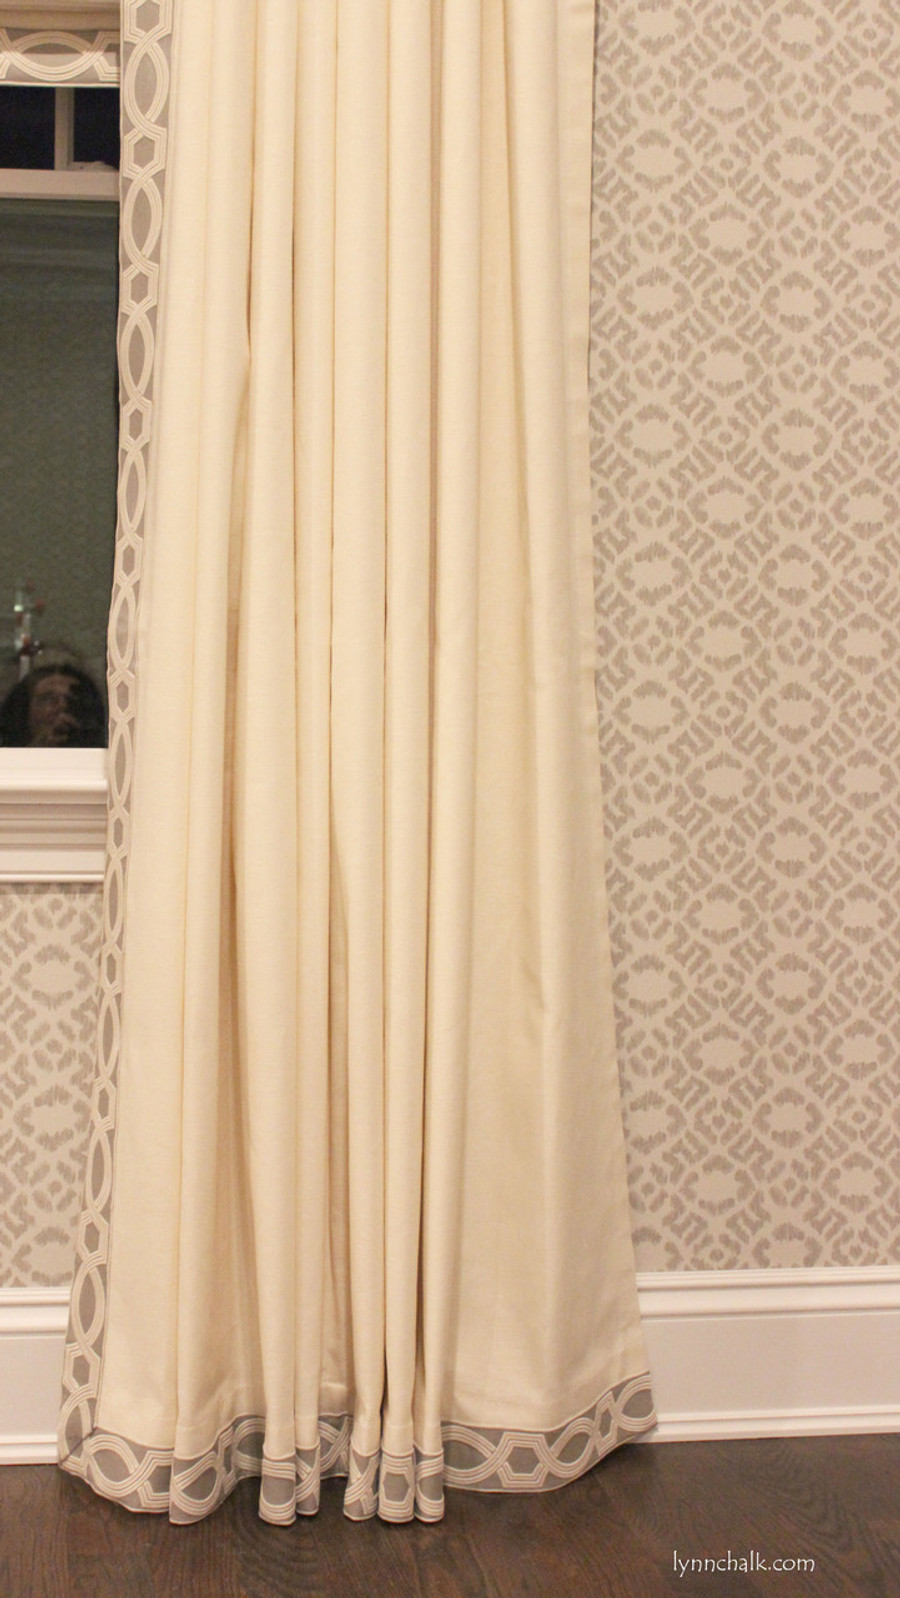 Trend Linen/Cotton 01838T Roman Shades with Samuel & Sons Ogee Embroidered Border in Dove